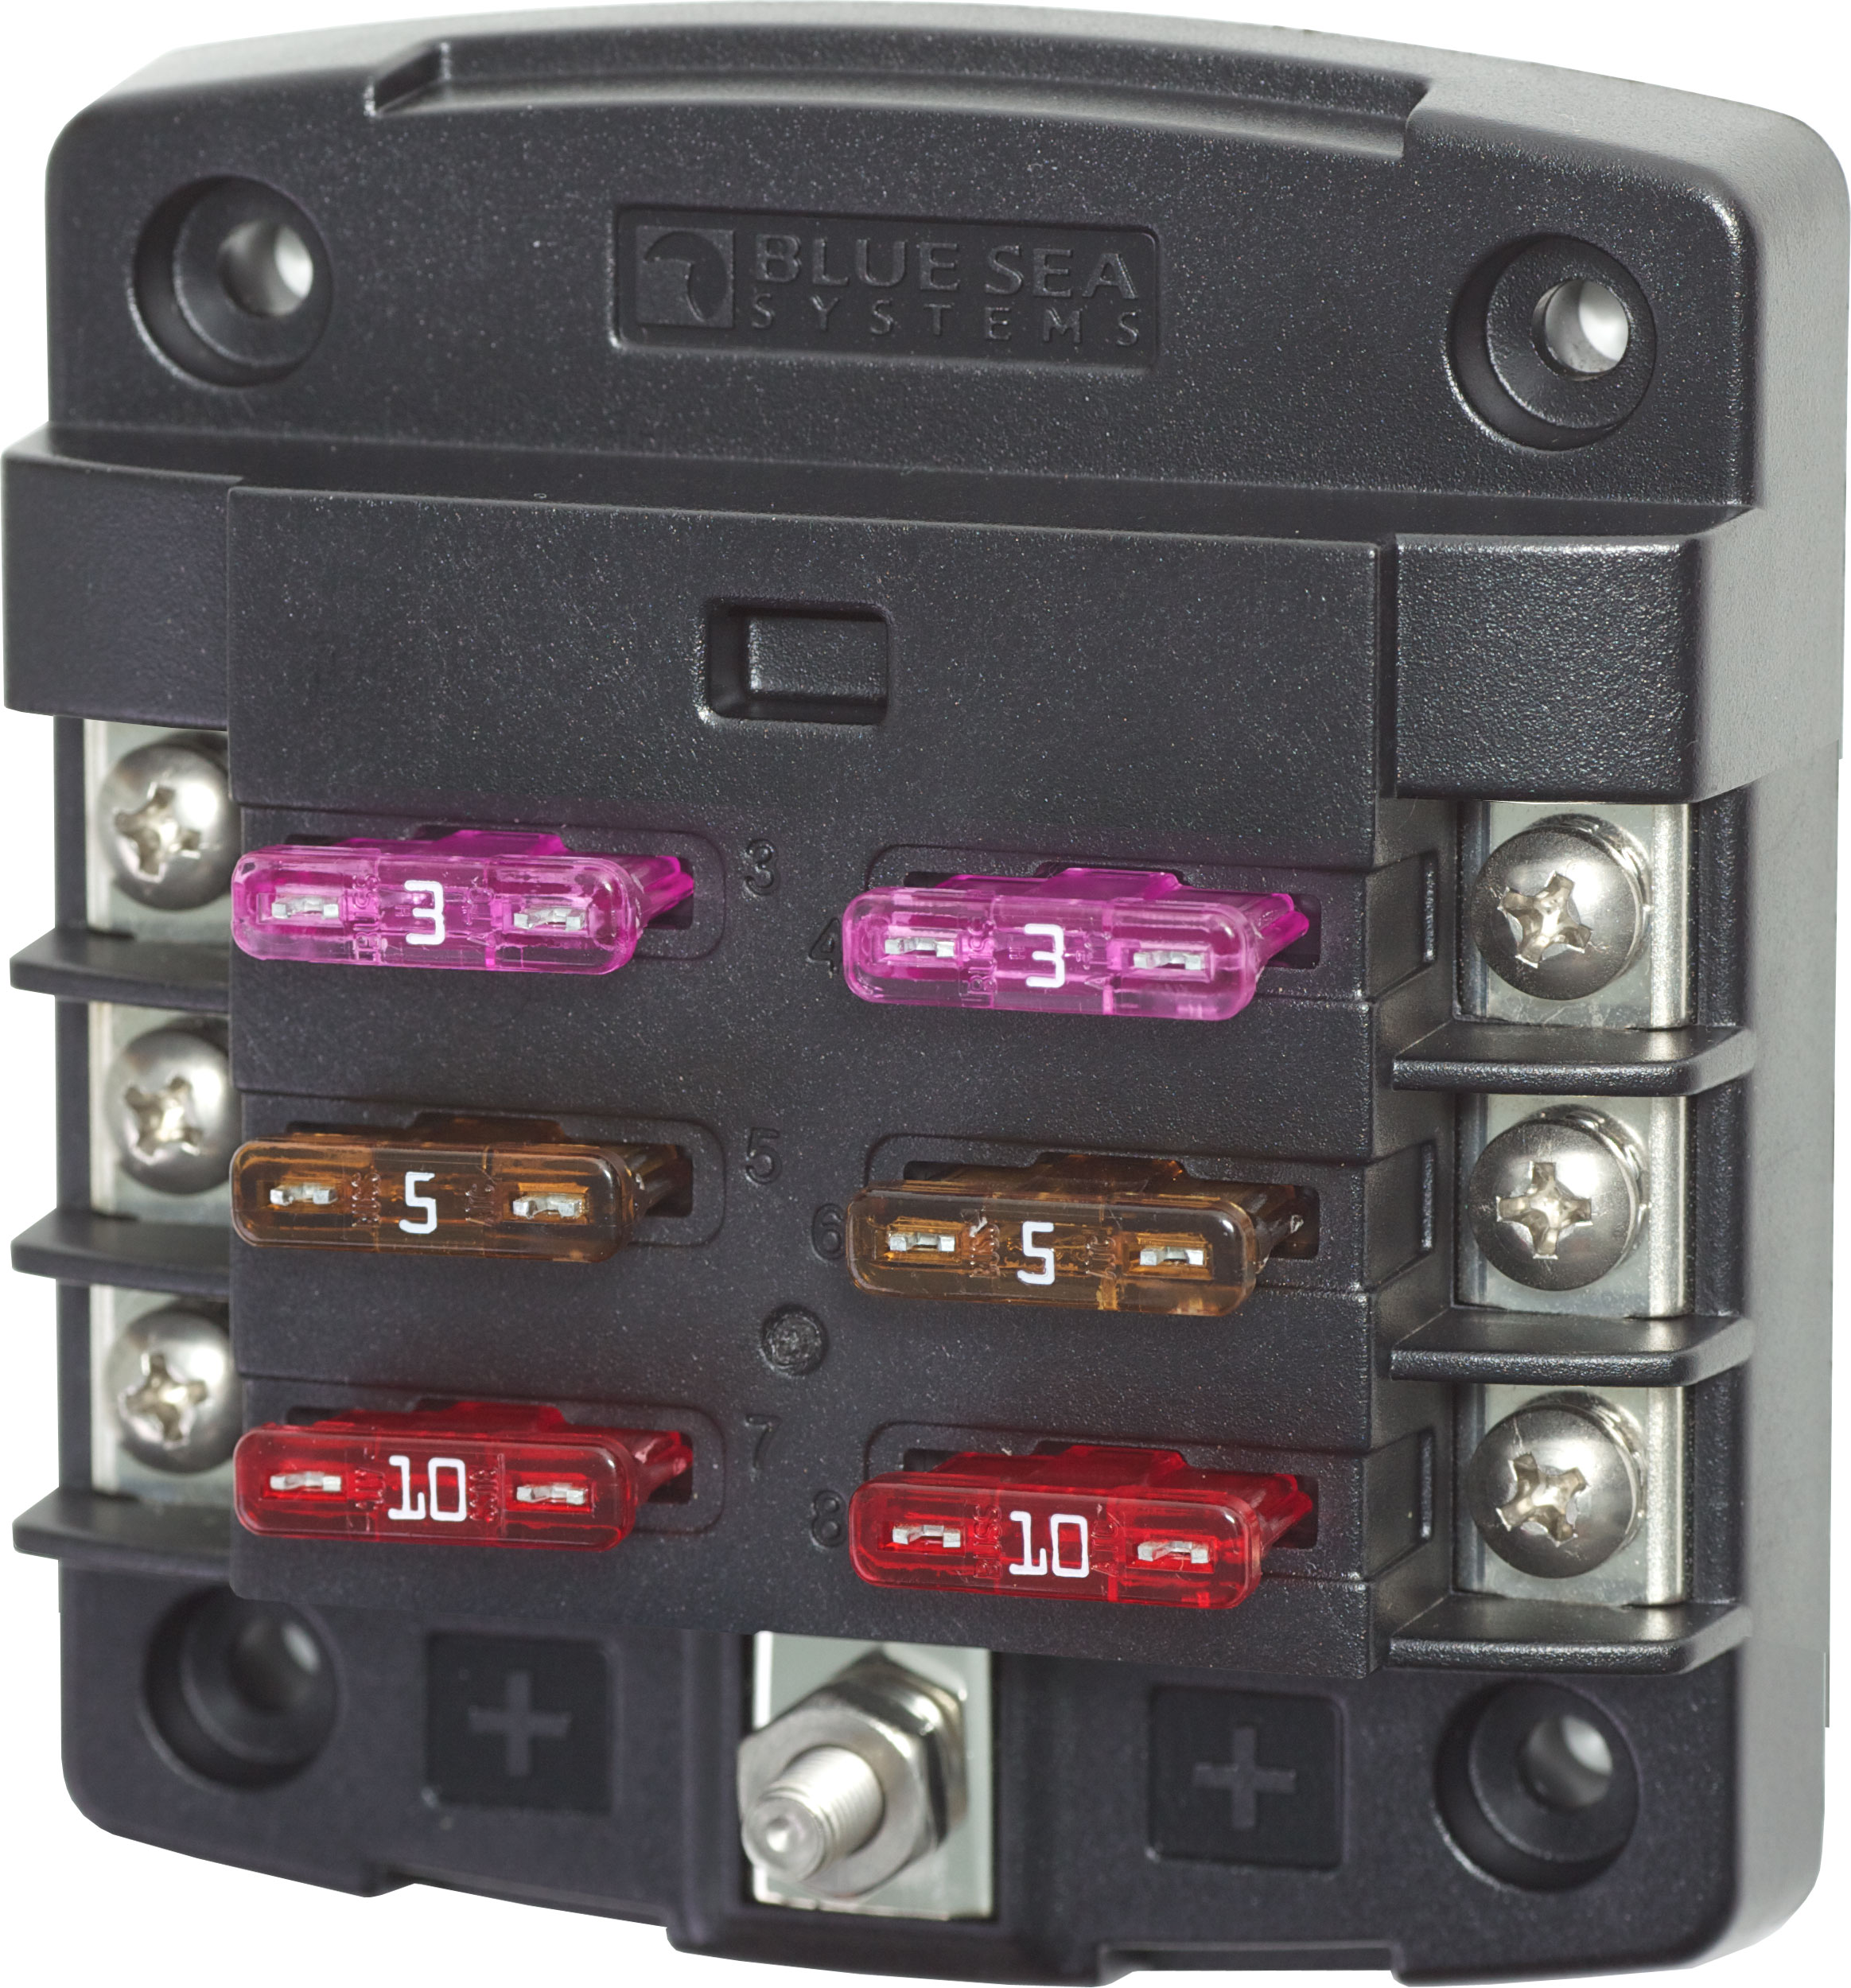 Blue Sea ST Blade Fuse Box 6 circuits with cover BS5028